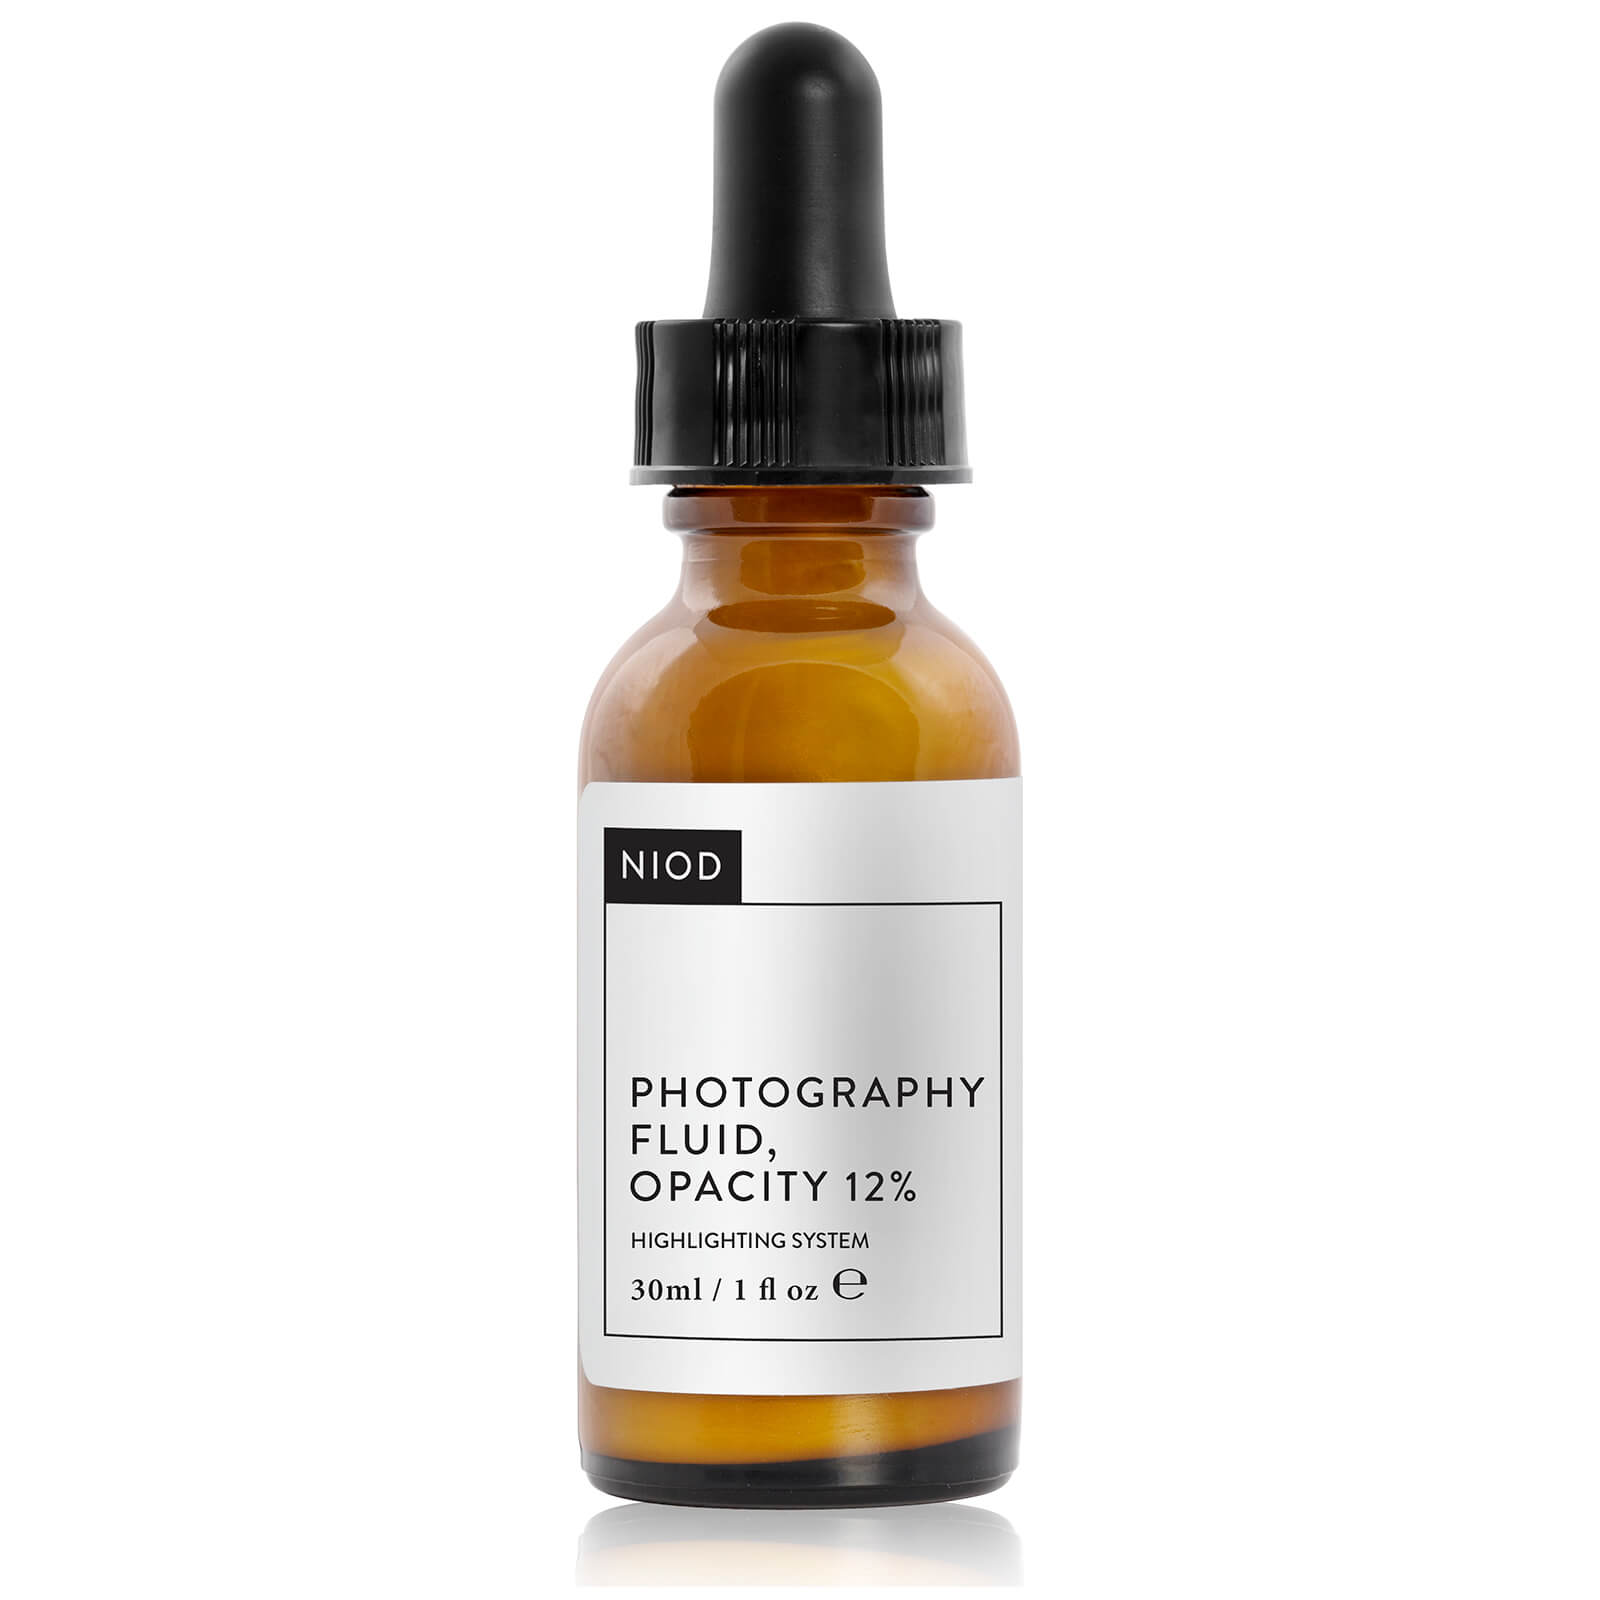 NIOD Photography Fluid, Colourless, Opacity 12% (30ml)